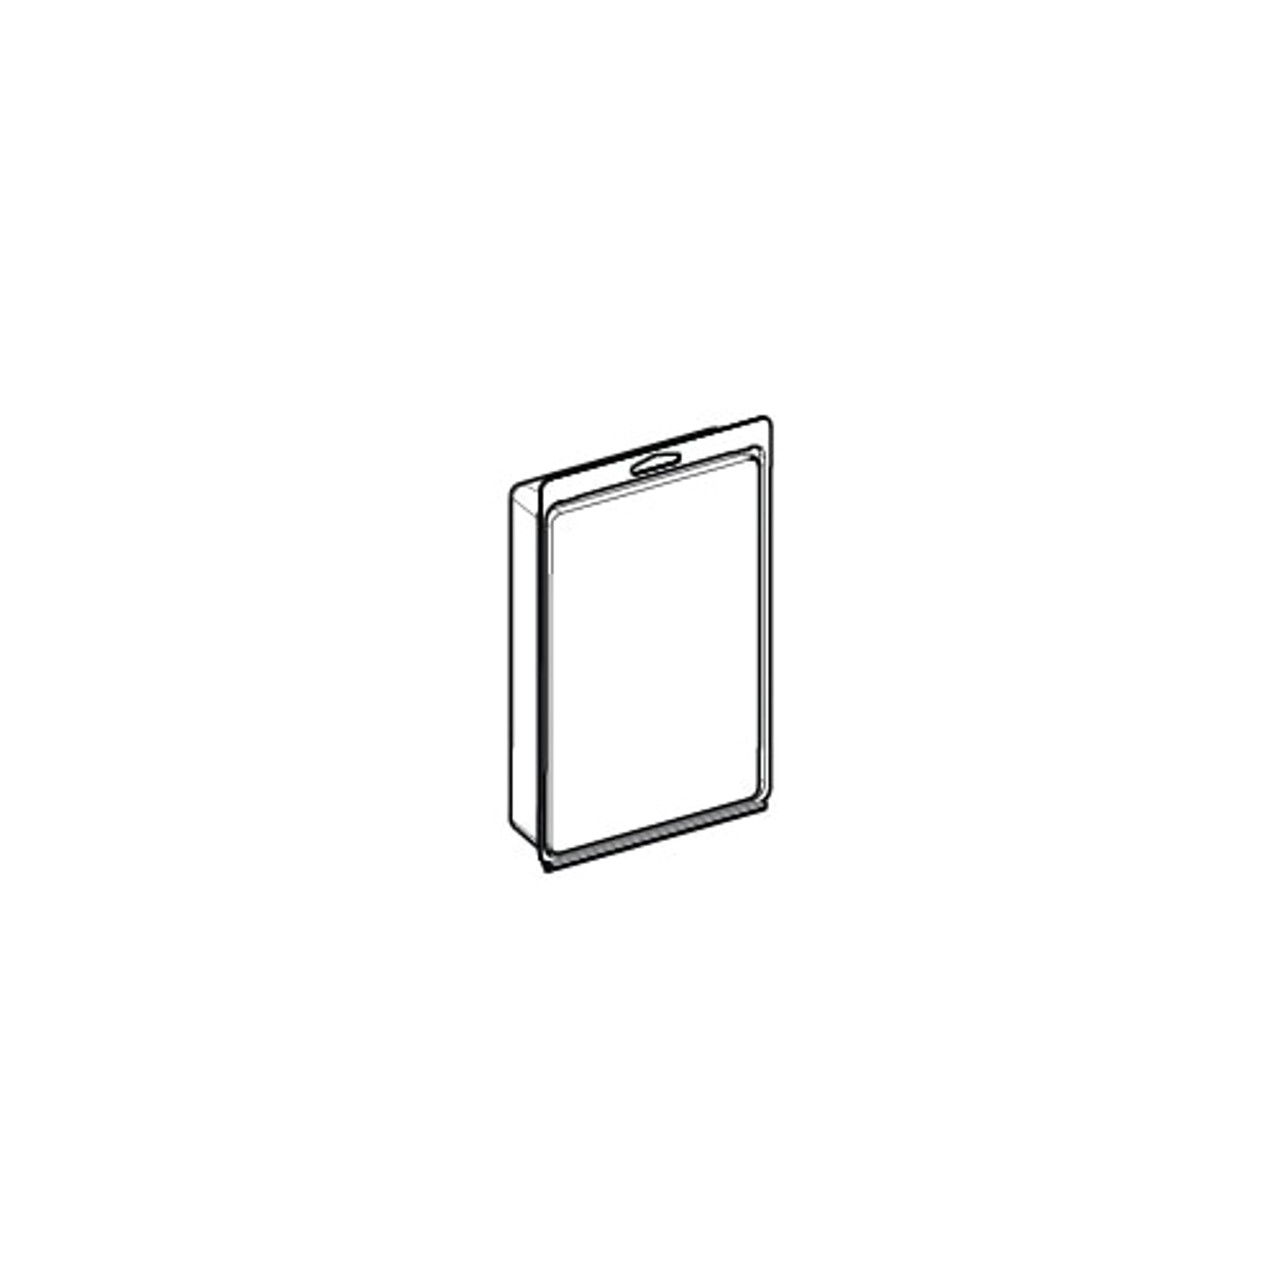 094465 - Stock Clamshell Packaging